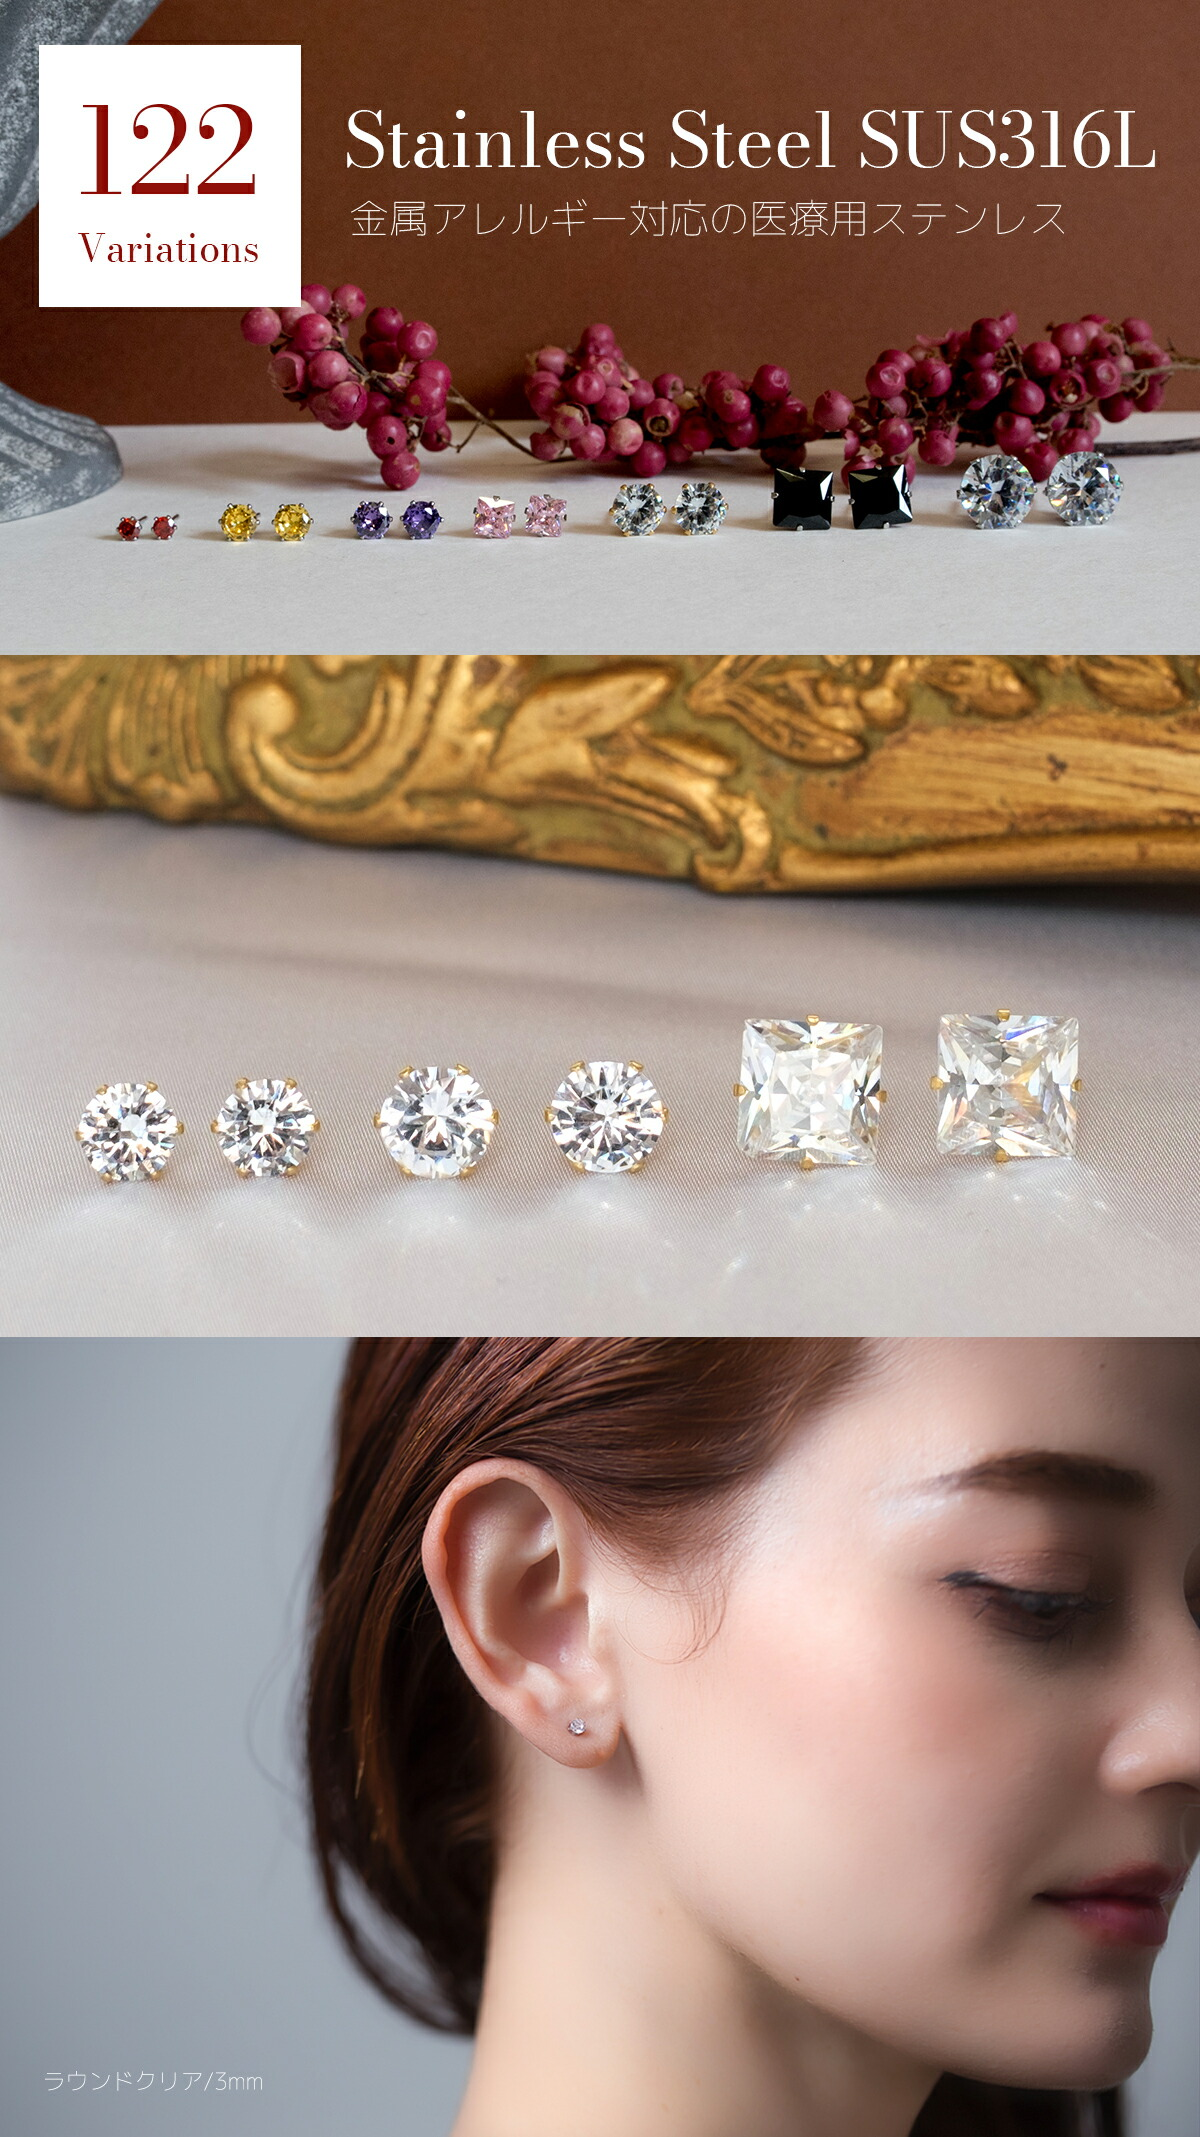 Surgical steel earring colors gemstone cubic zirconia | SUS316L / ears 1 pair sale / kalabari/simple / classic women's fashion accessories jewellery Museum